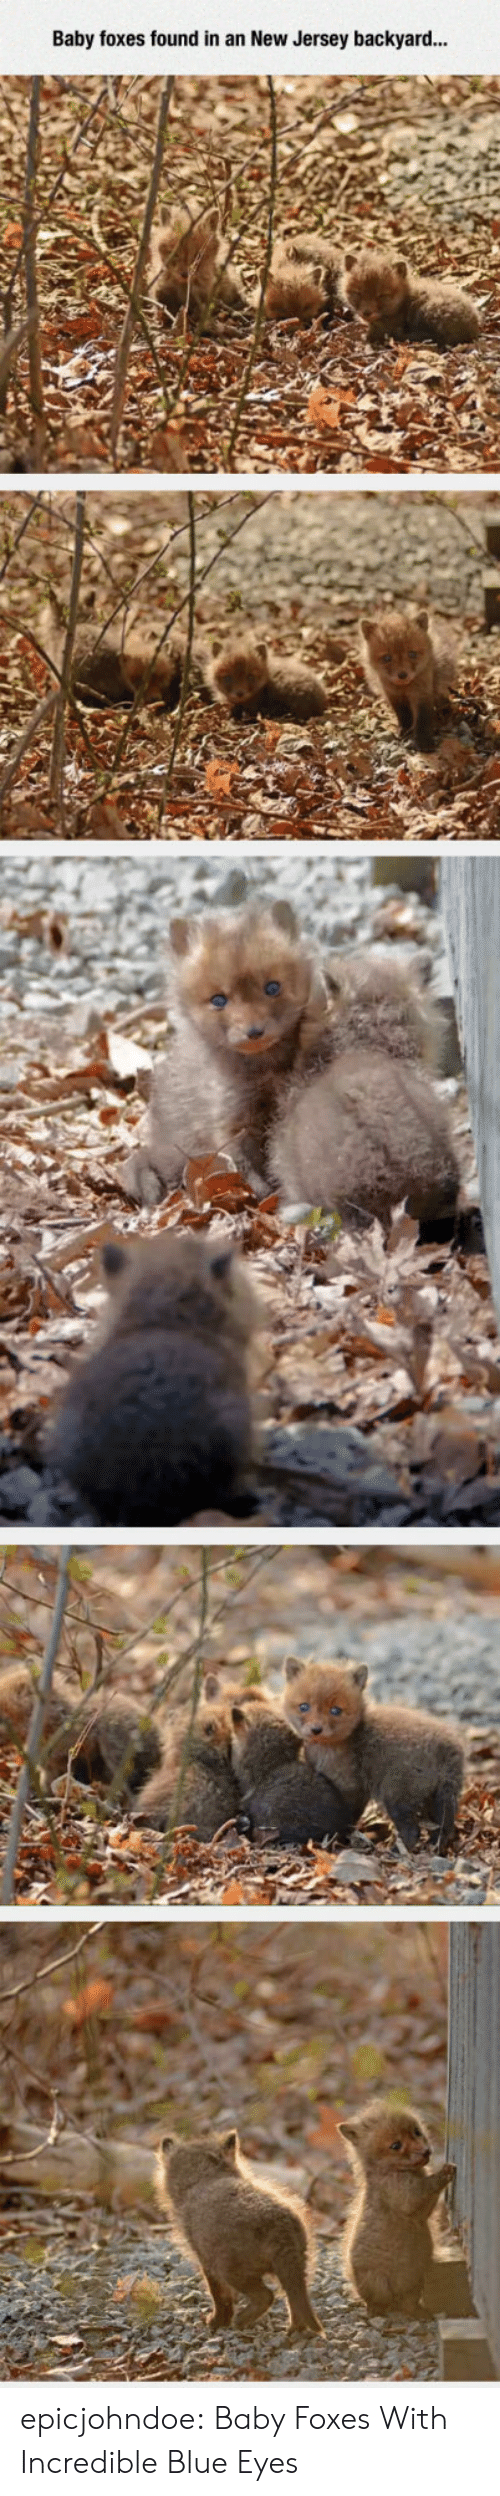 Tumblr, Blog, and Blue: Baby foxes found in an New Jersey backyard... epicjohndoe:  Baby Foxes With Incredible Blue Eyes